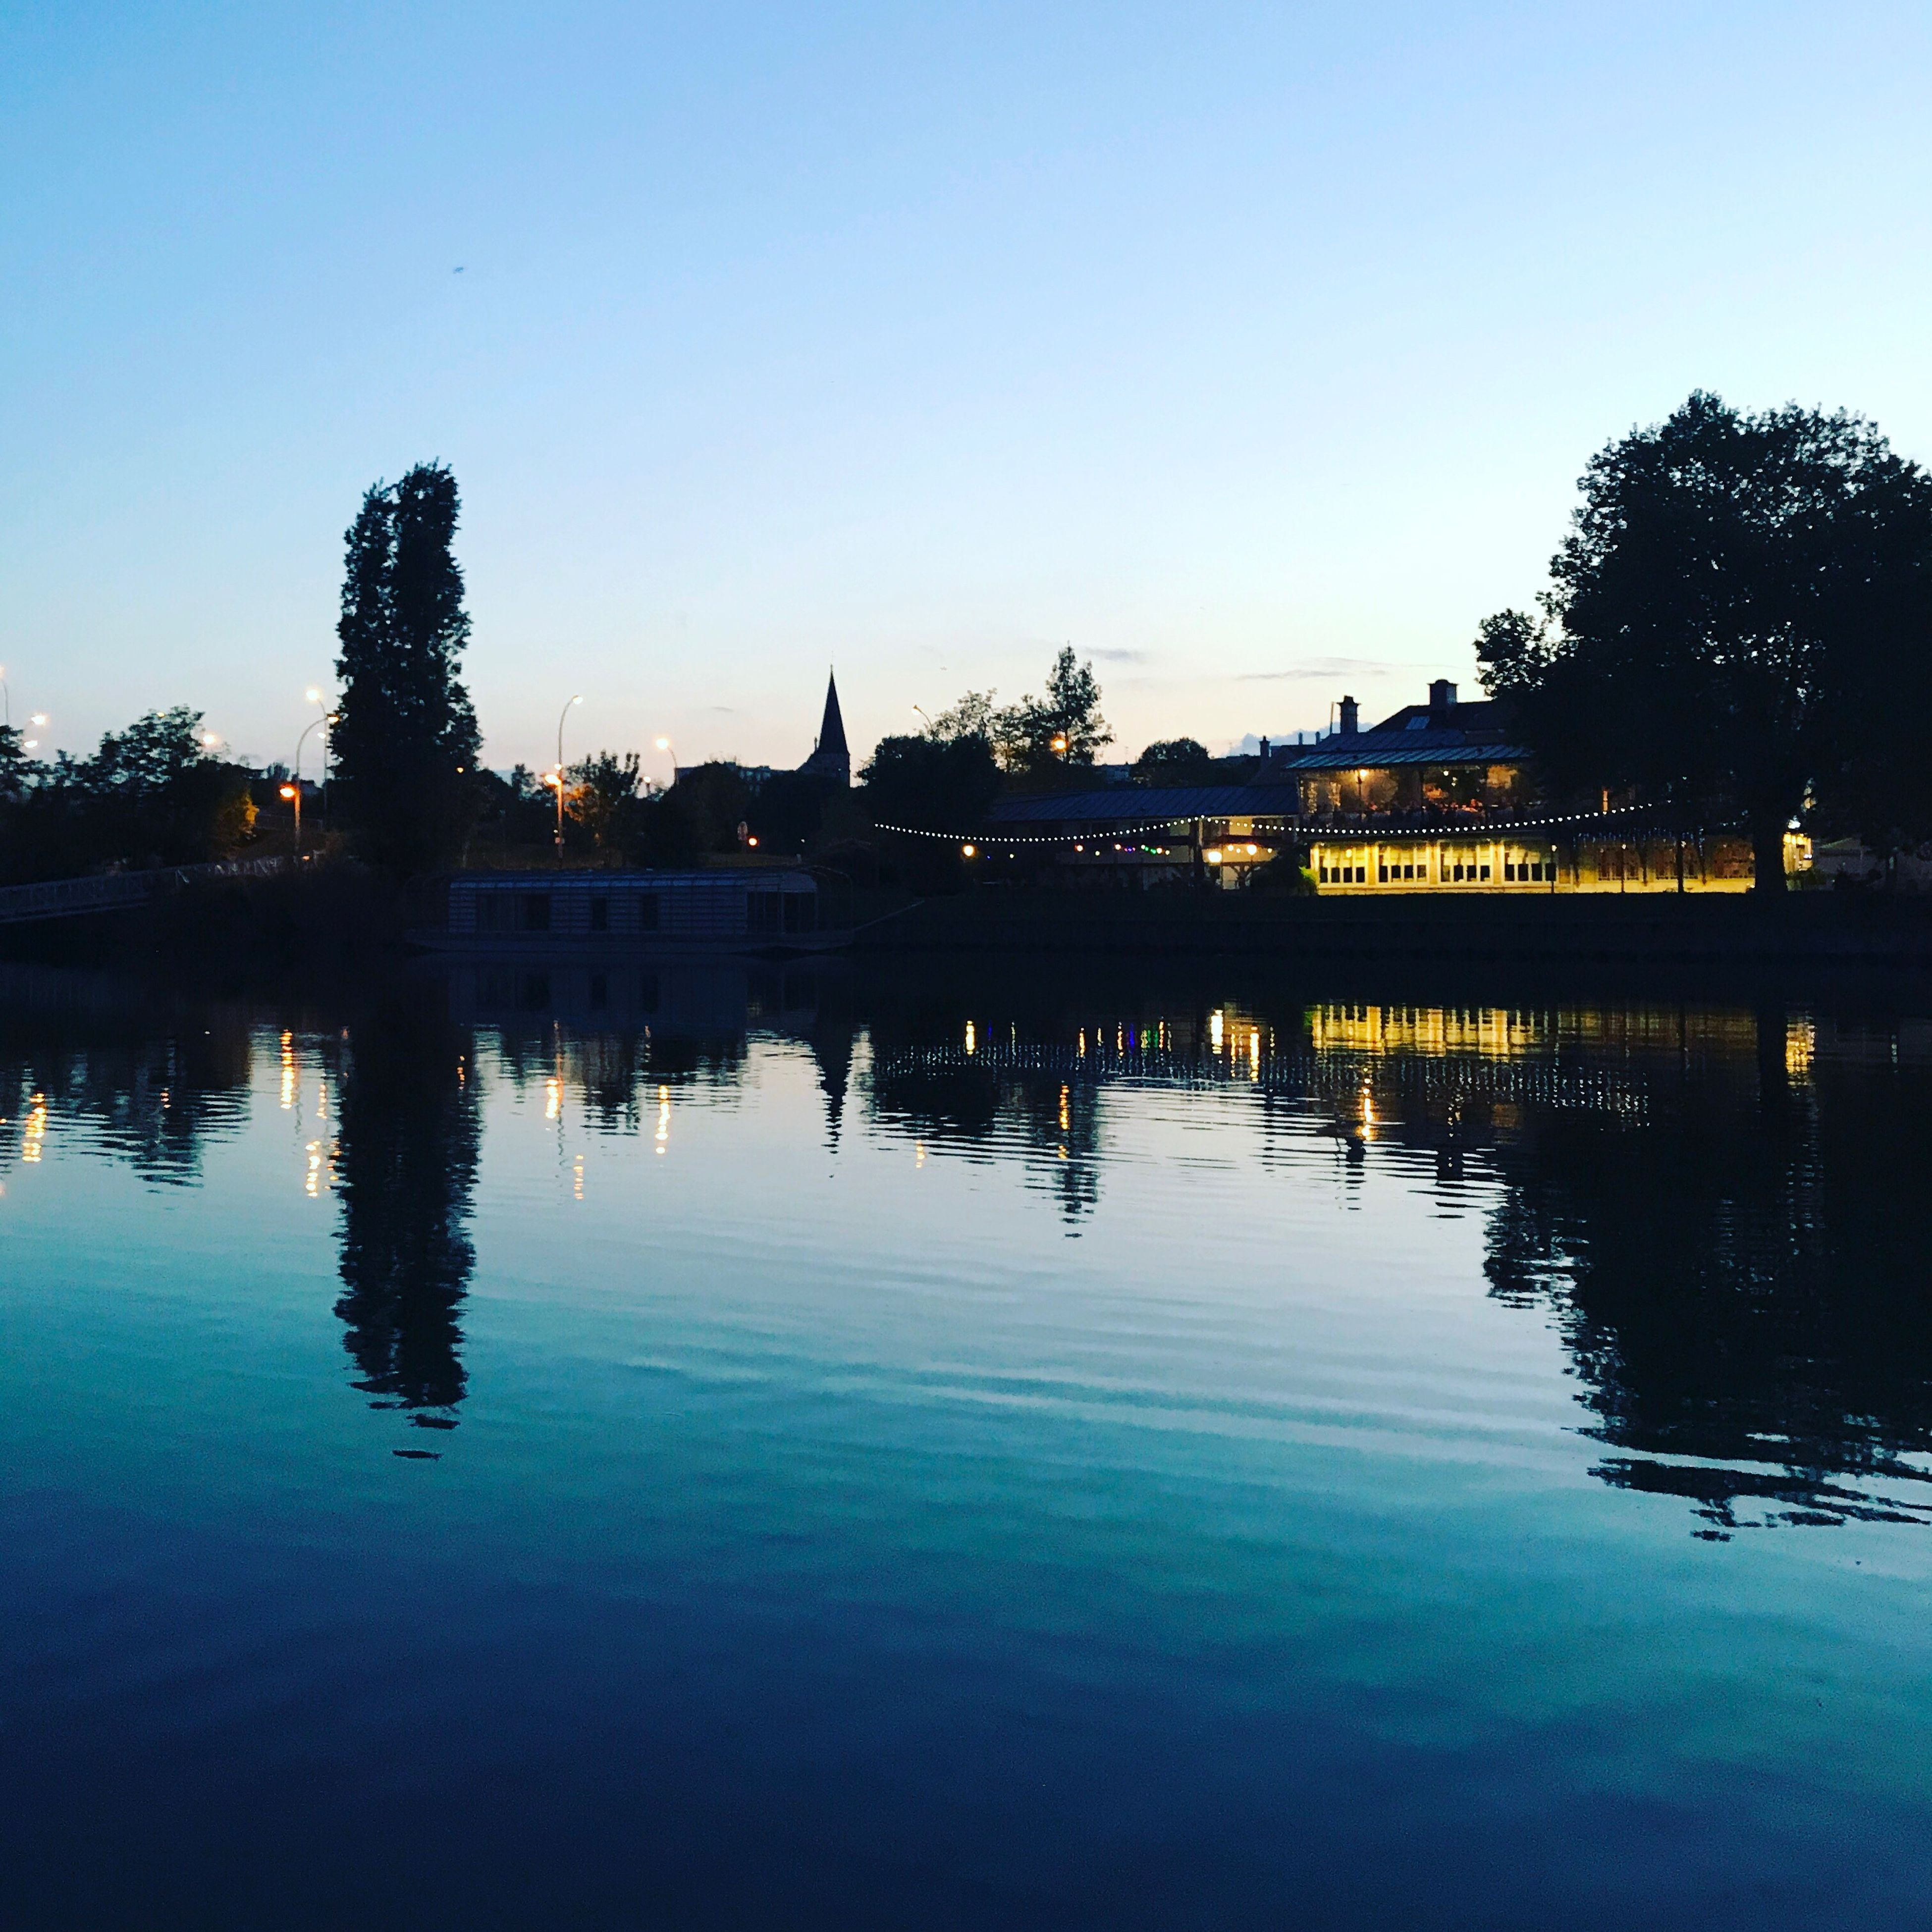 water, reflection, silhouette, tree, sunset, built structure, lake, waterfront, architecture, outdoors, blue, sky, building exterior, clear sky, tranquil scene, nature, scenics, swimming pool, beauty in nature, no people, city, day